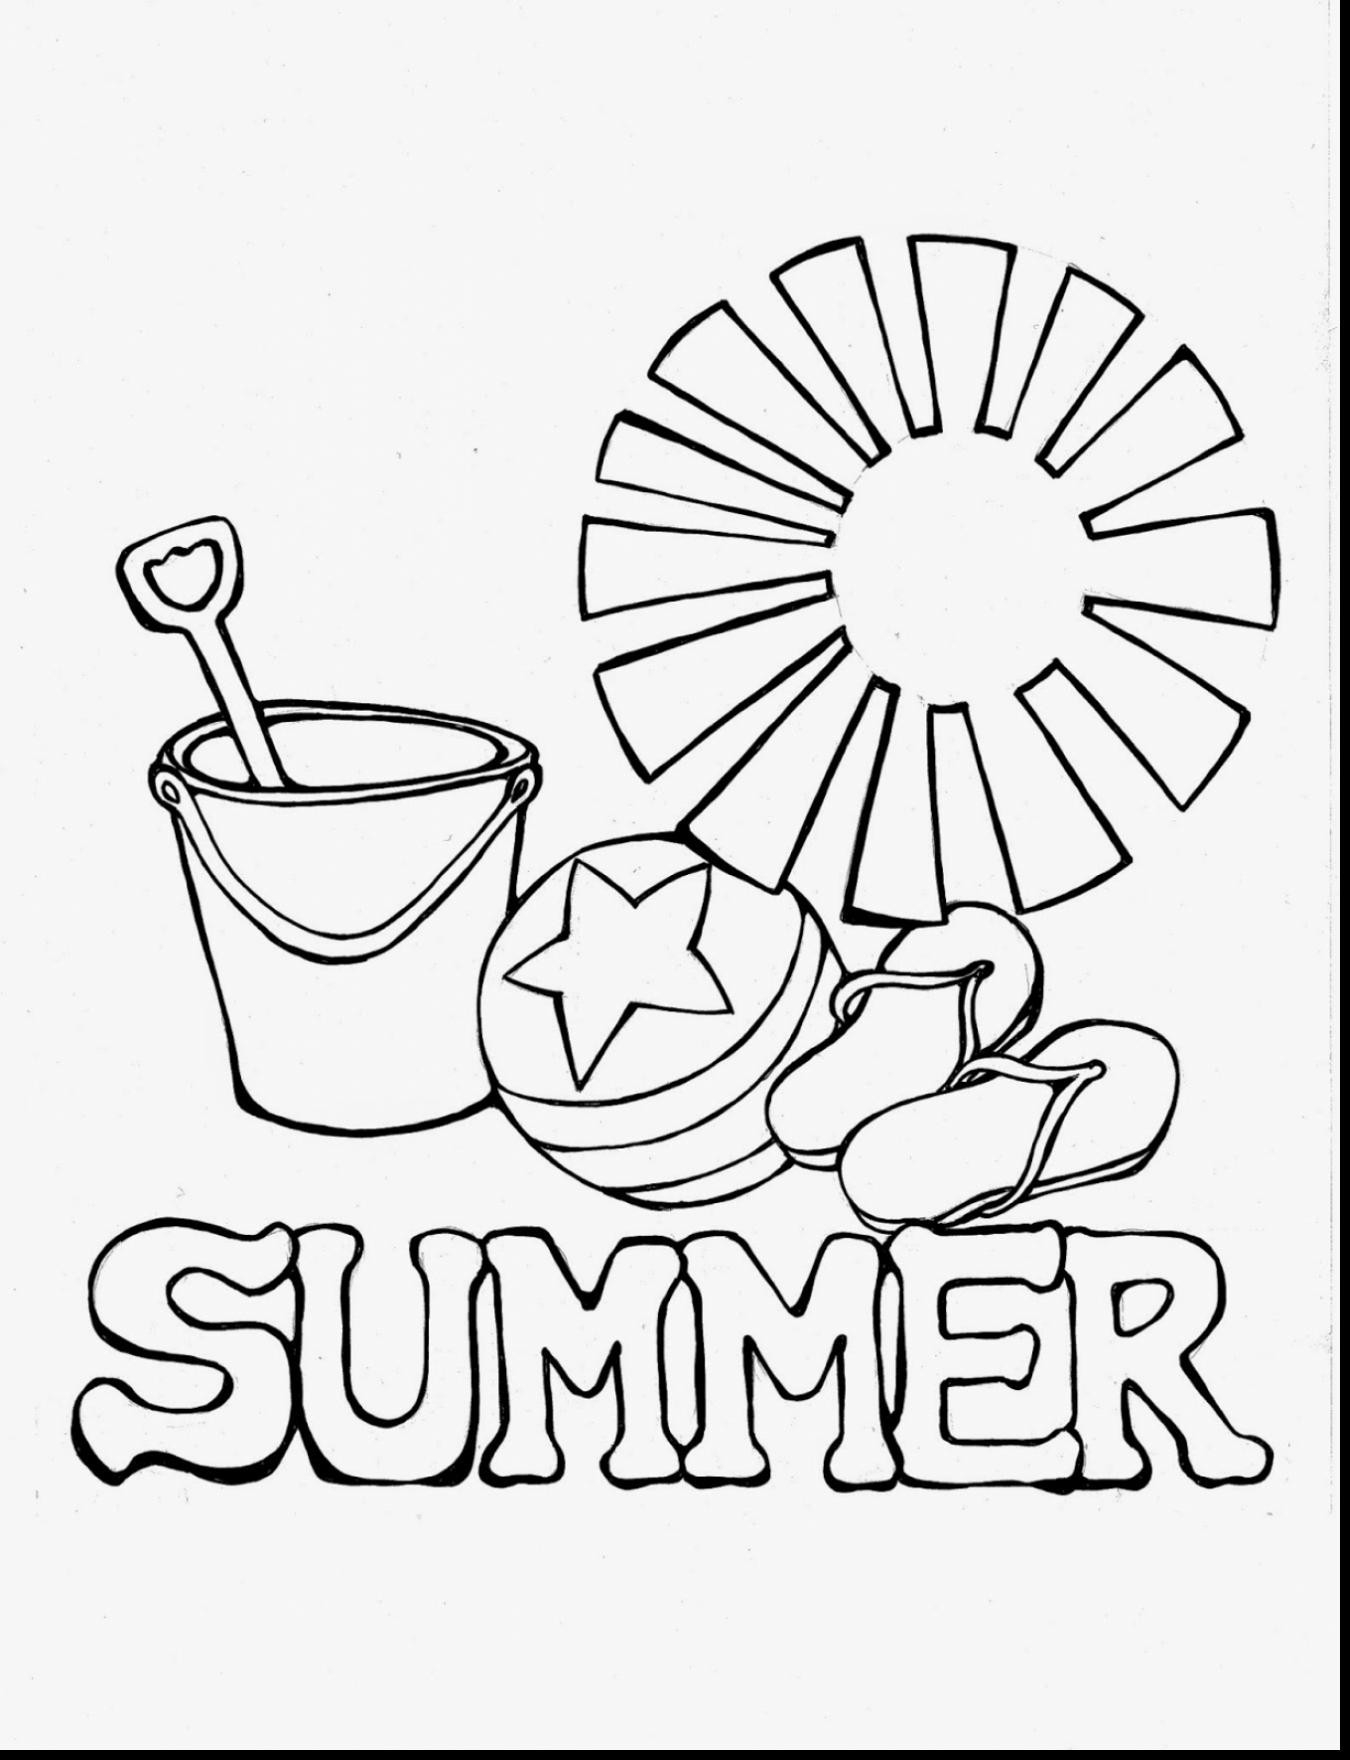 Free Printable Summer Coloring Pages - Saglik - Free Printable Summer Coloring Pages